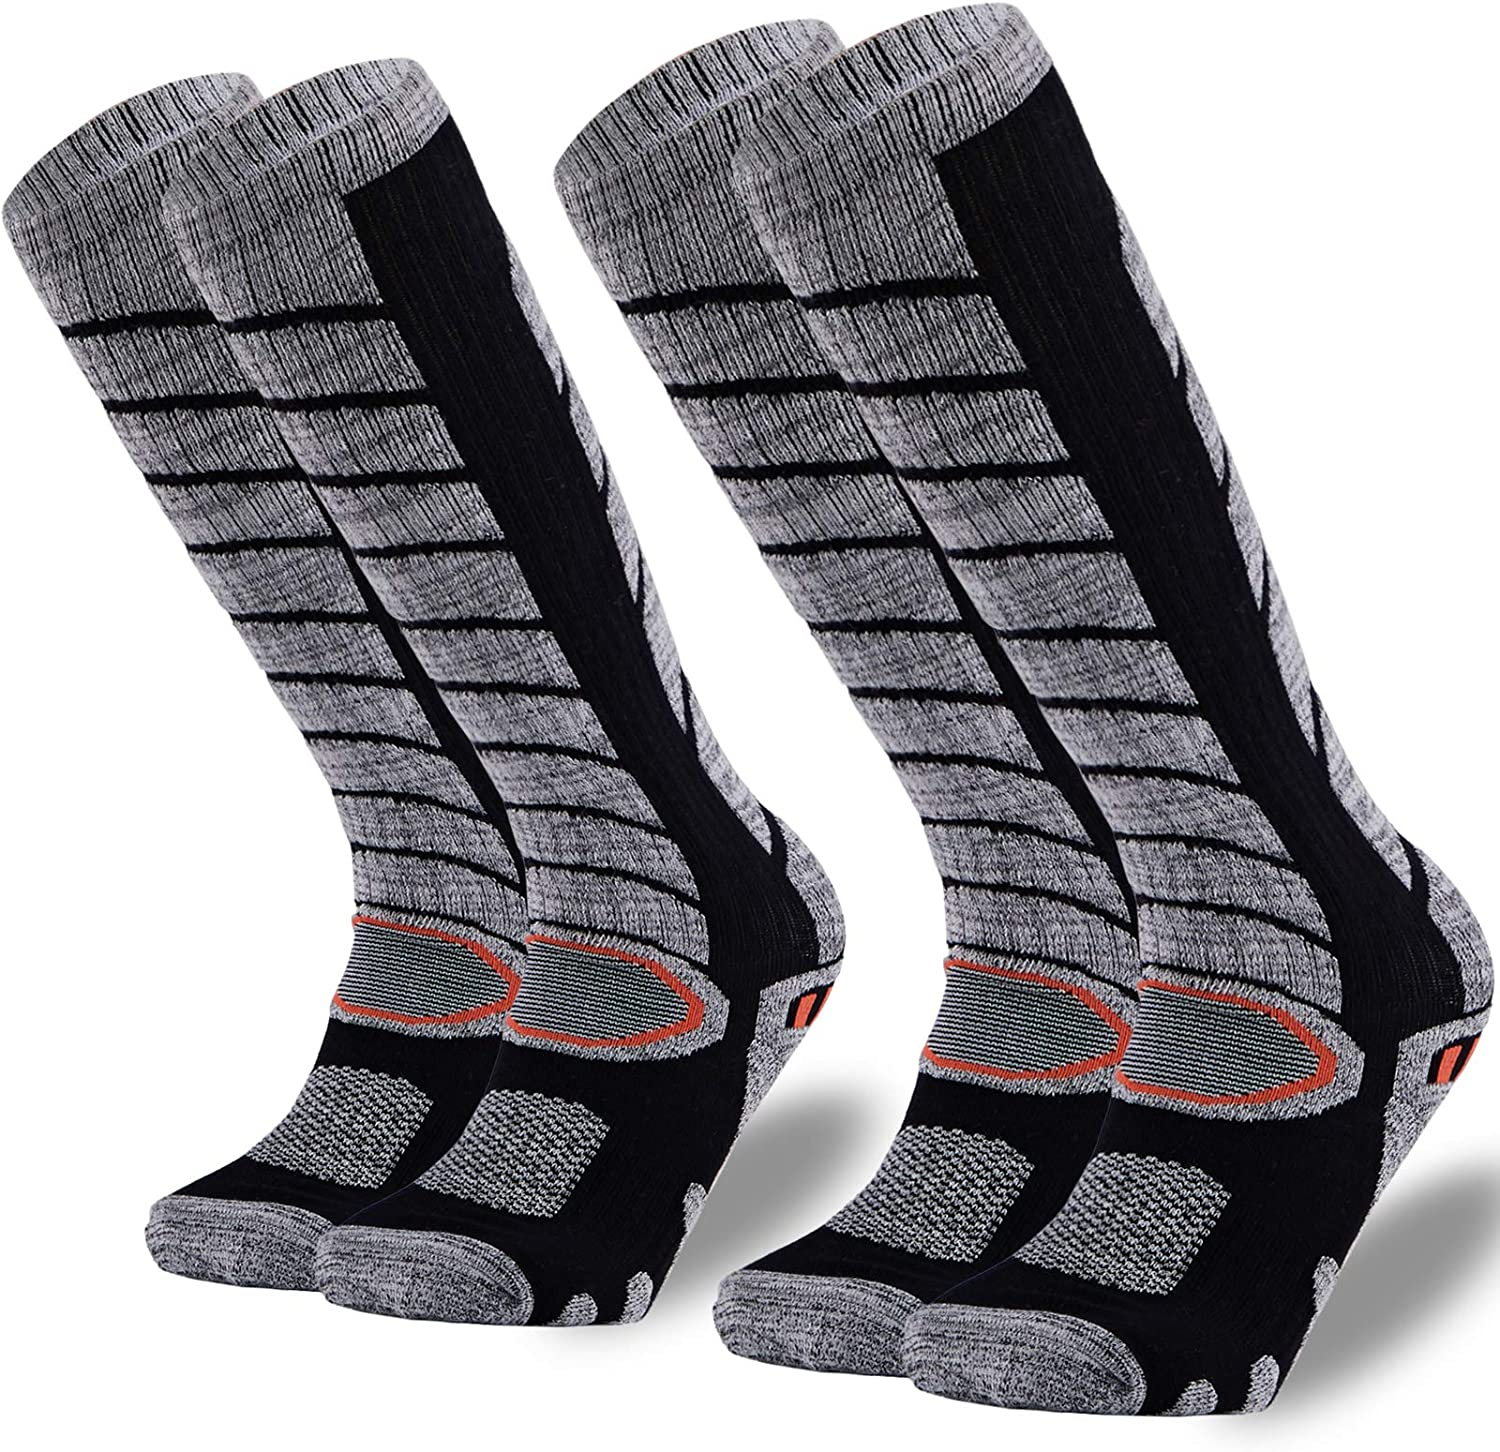 MAXTOP Ski Socks 2 Pairs Pack for Skiing, Snowboarding, Cold Weather, Winter Performance Socks